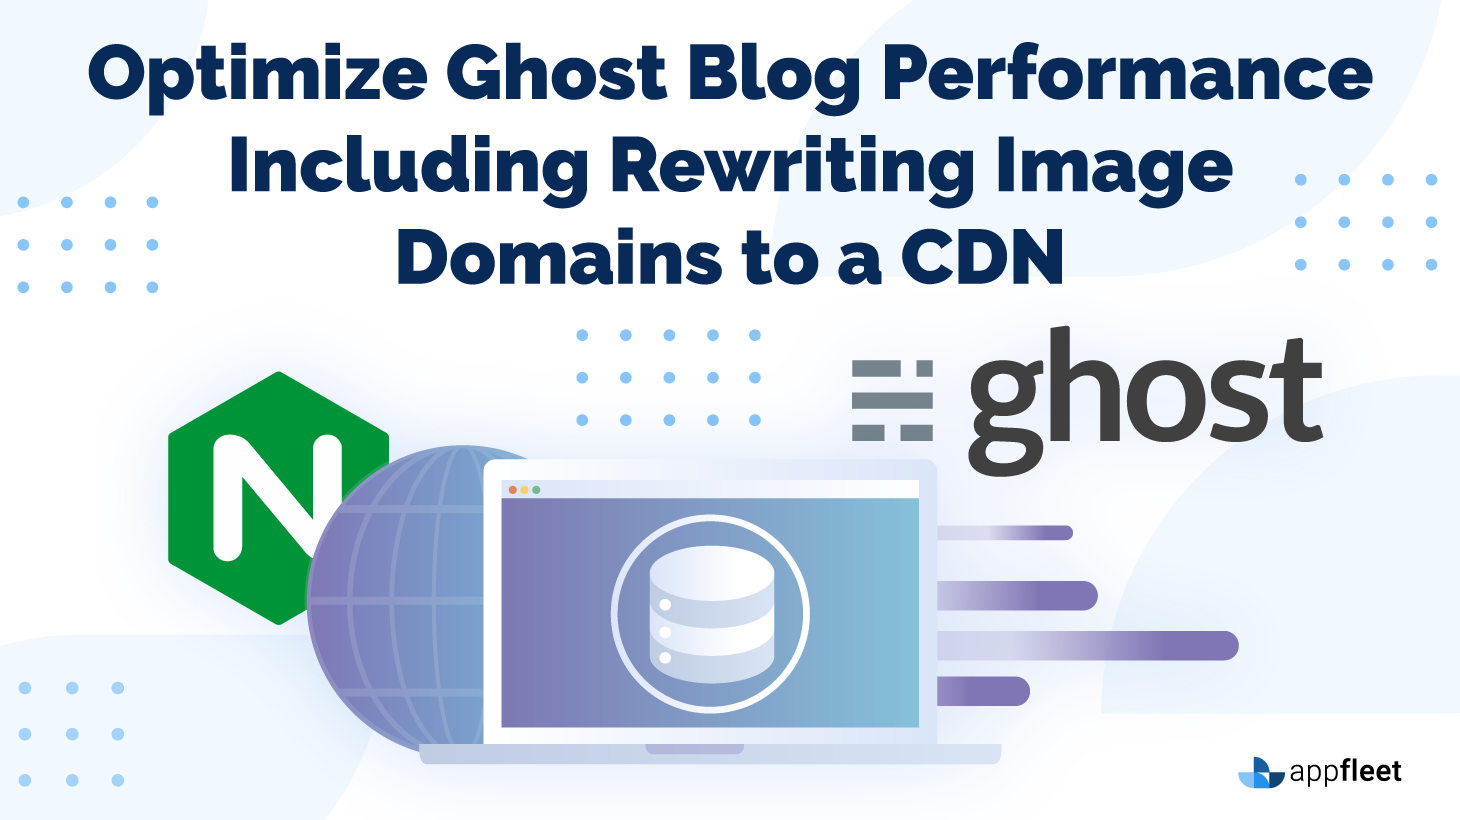 Optimize Ghost Blog Performance Including Rewriting Image Domains to a CDN